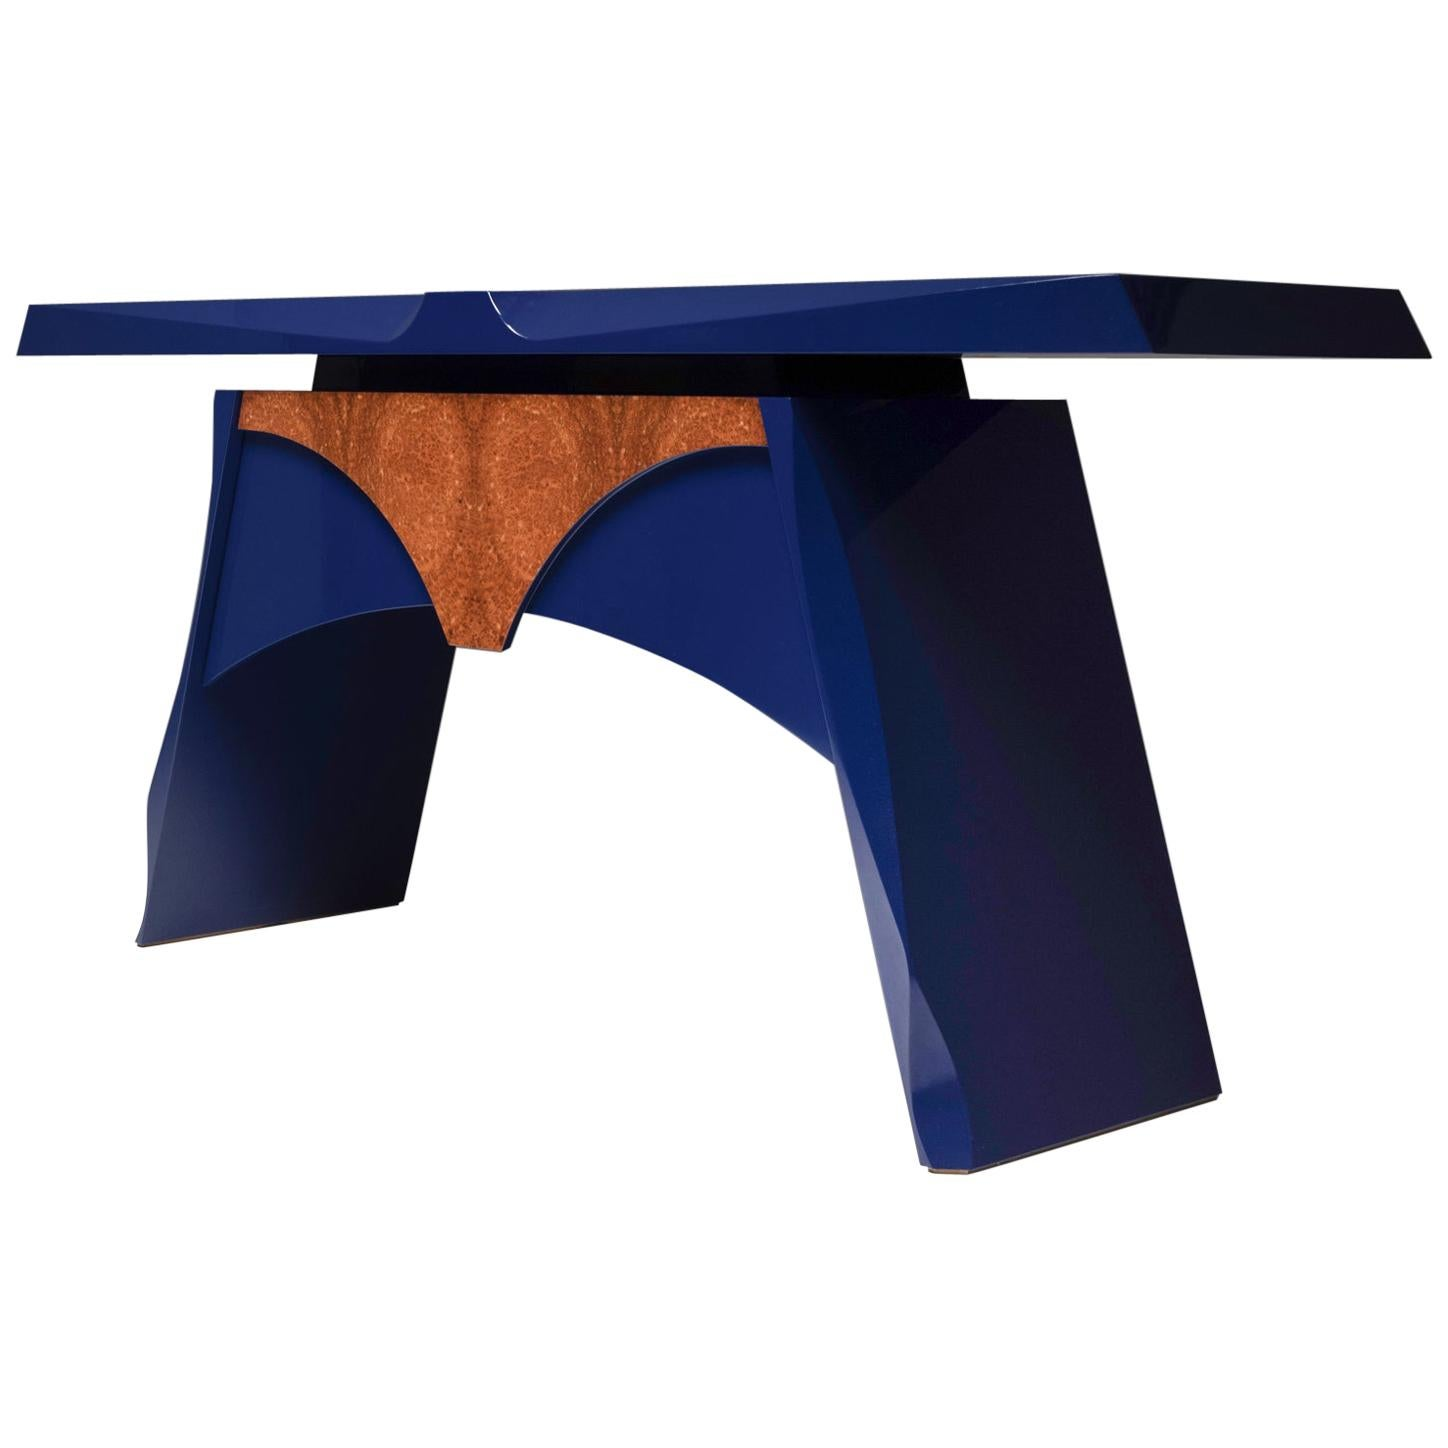 Blue Lacquered Console Table, 1980s